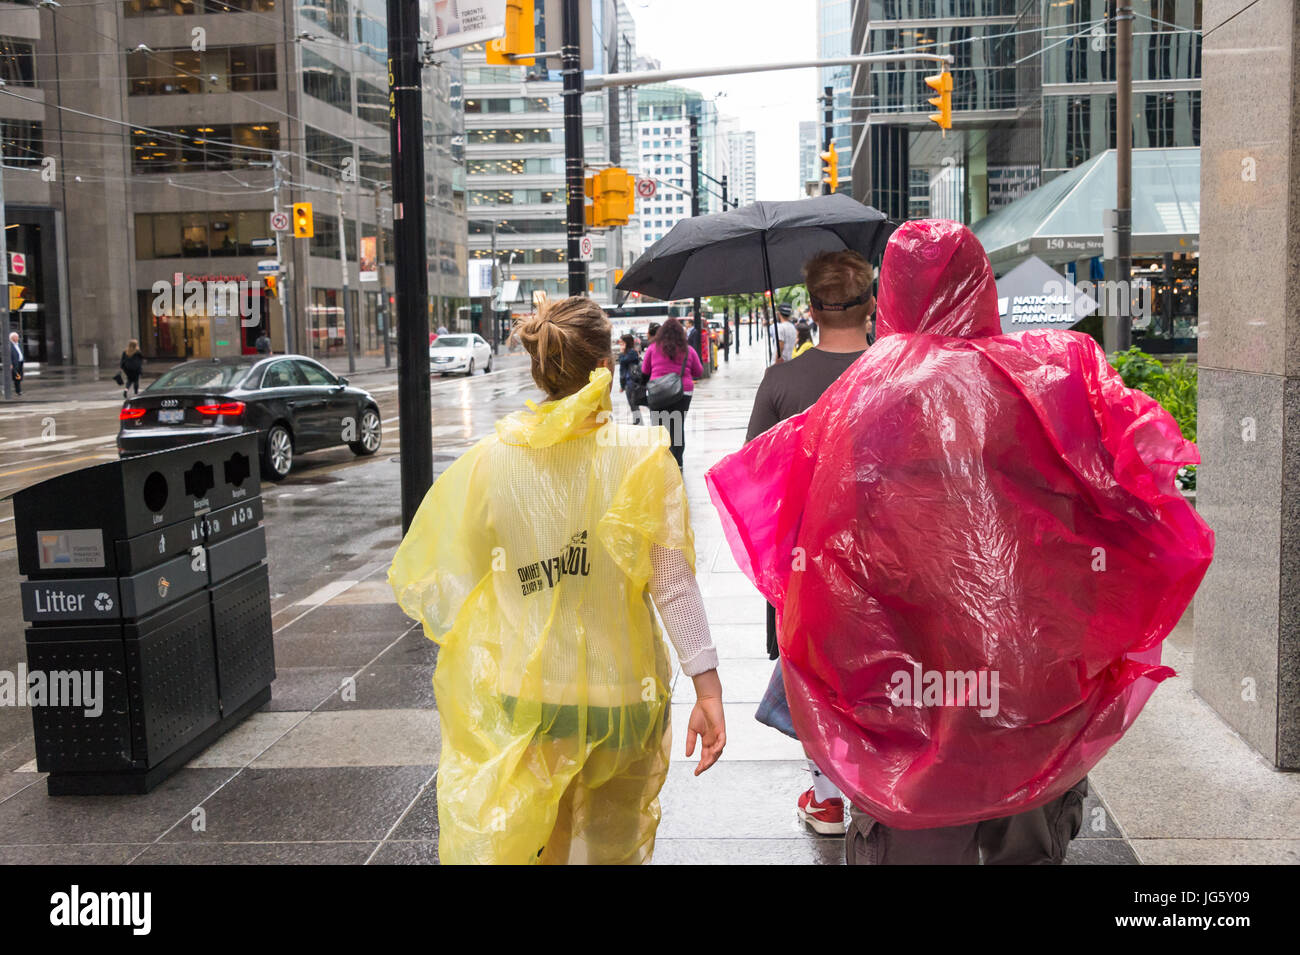 Toronto, Canada - 26 June 2017: Crowd of people with umbrellas and rain ponchos on a rainy day - Stock Image